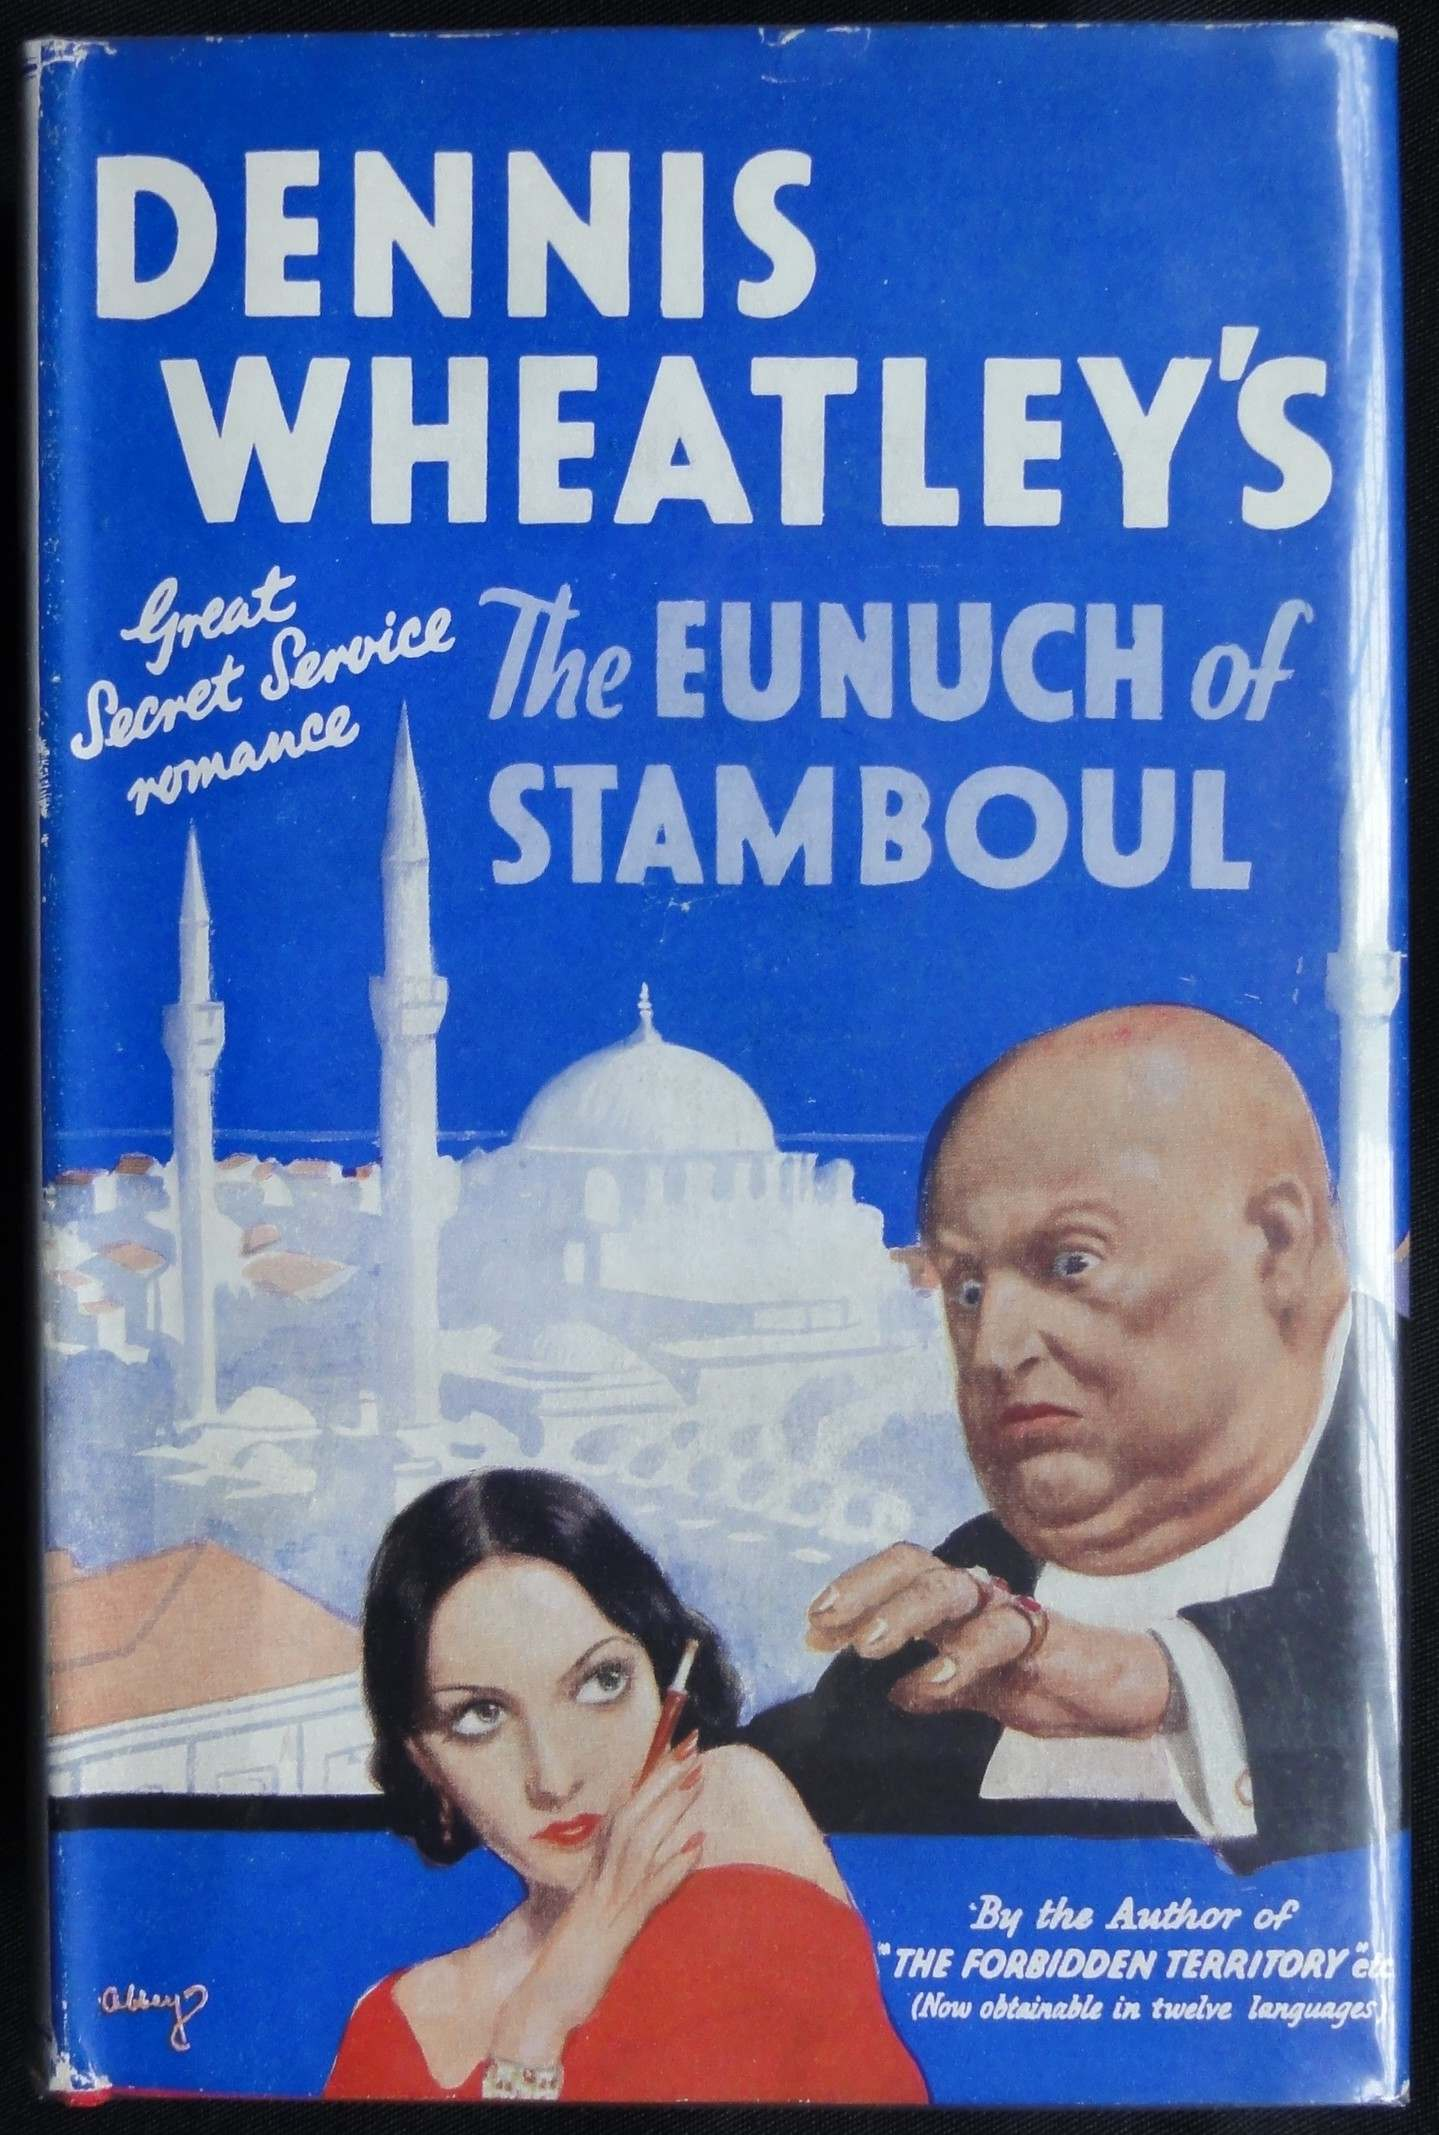 The Eunuch of Stamboul published in 1953.